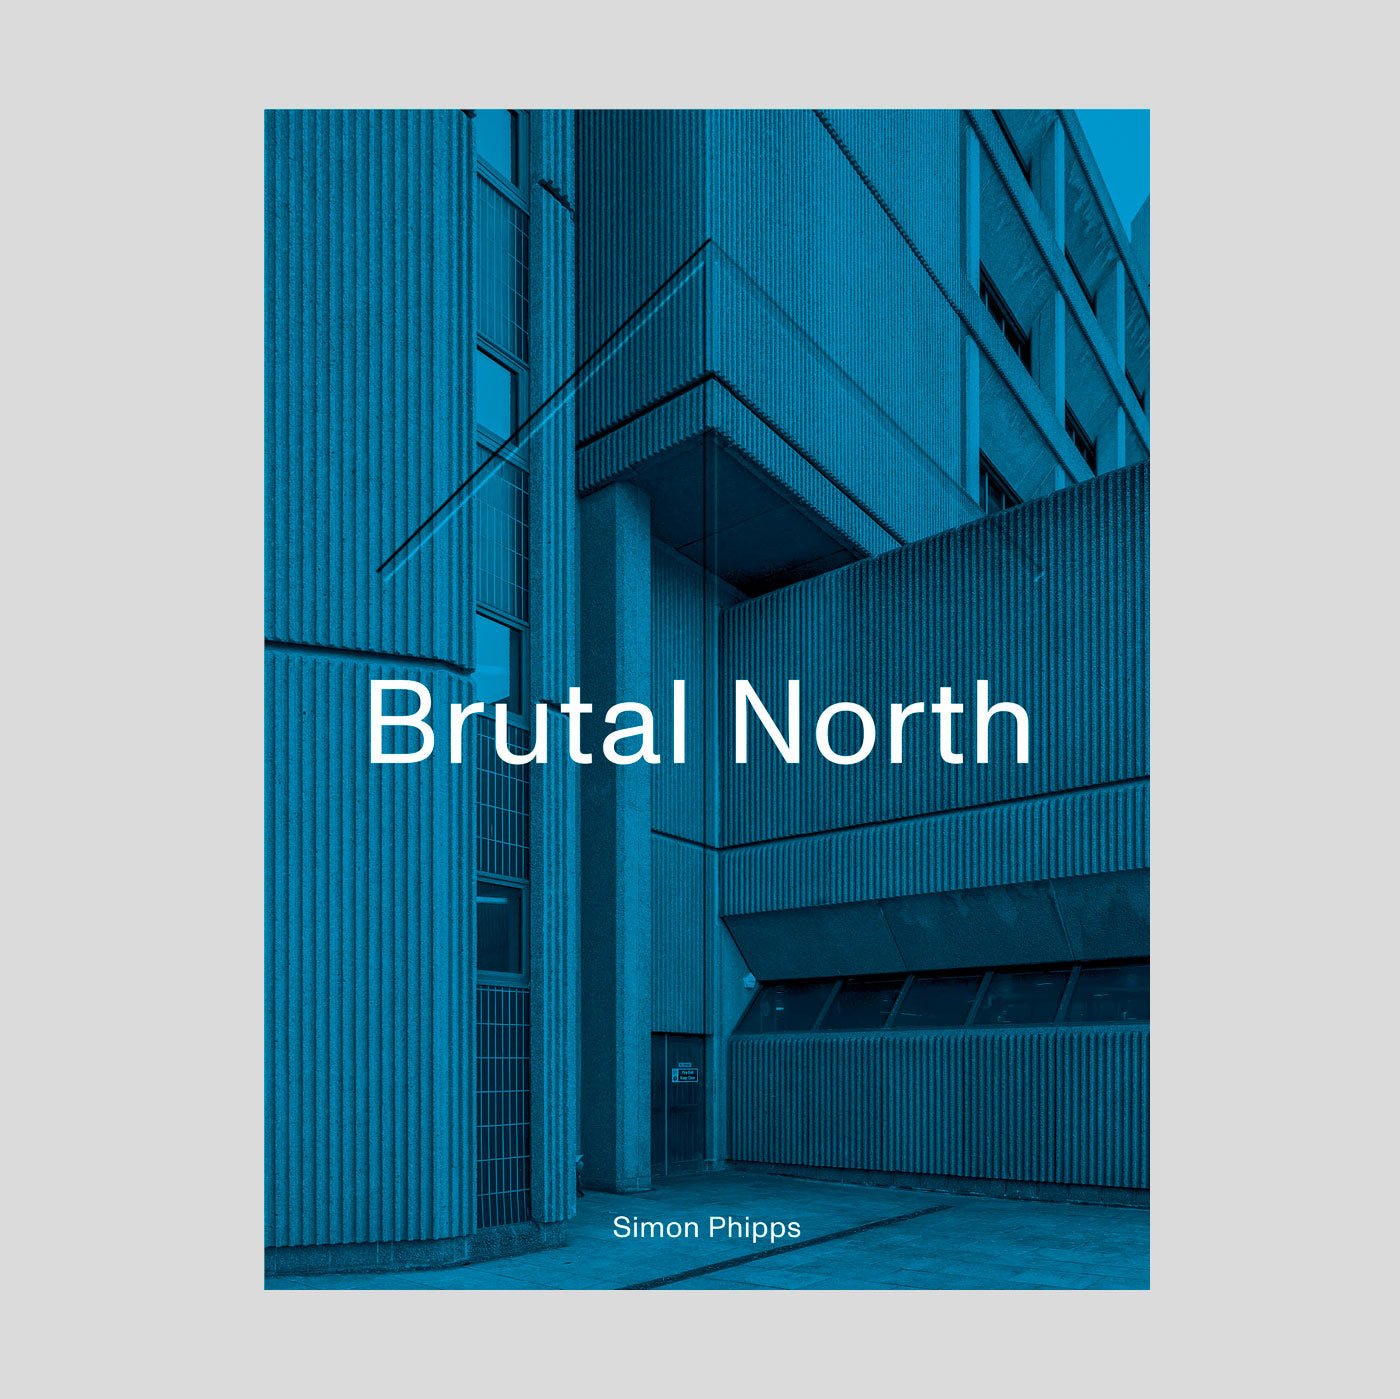 Brutal North: Post-War Modernist Architecture in the North of England | Simon Phipps.